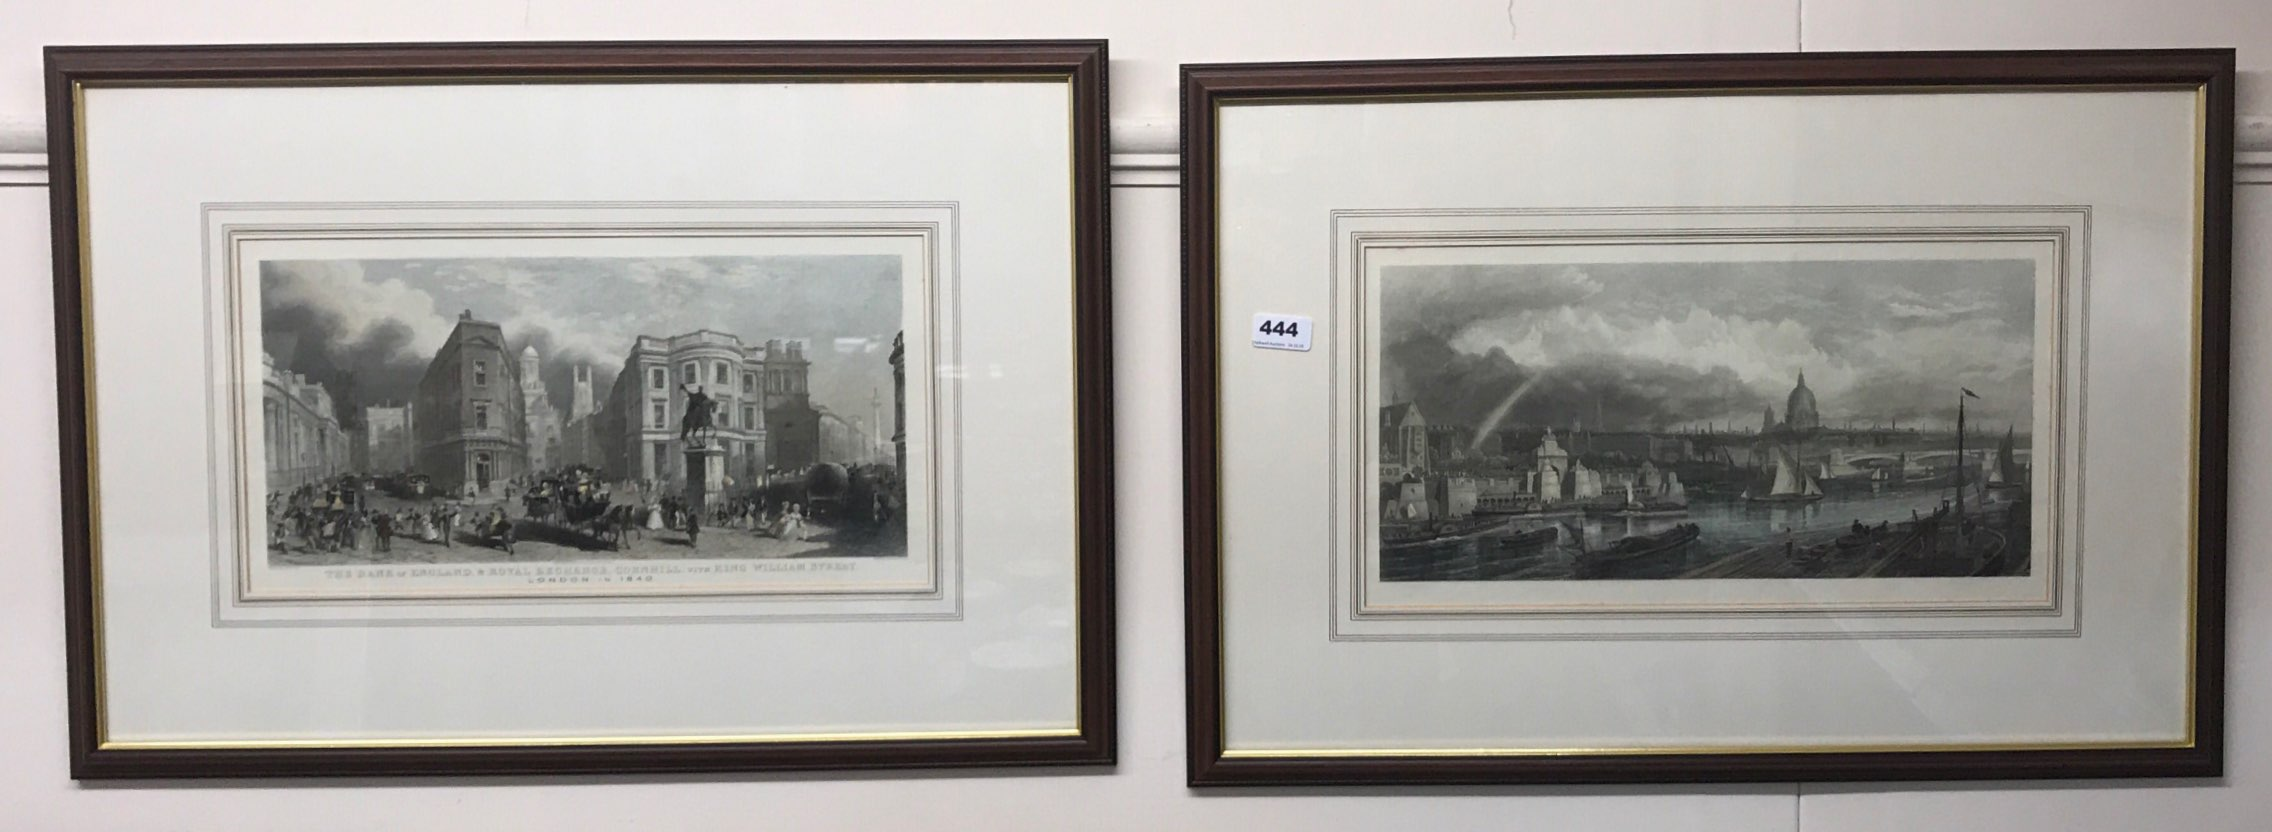 Lot 444 - A pair of framed coloured prints of The Bank of England, Royal Exchange, Cornhill, with King William